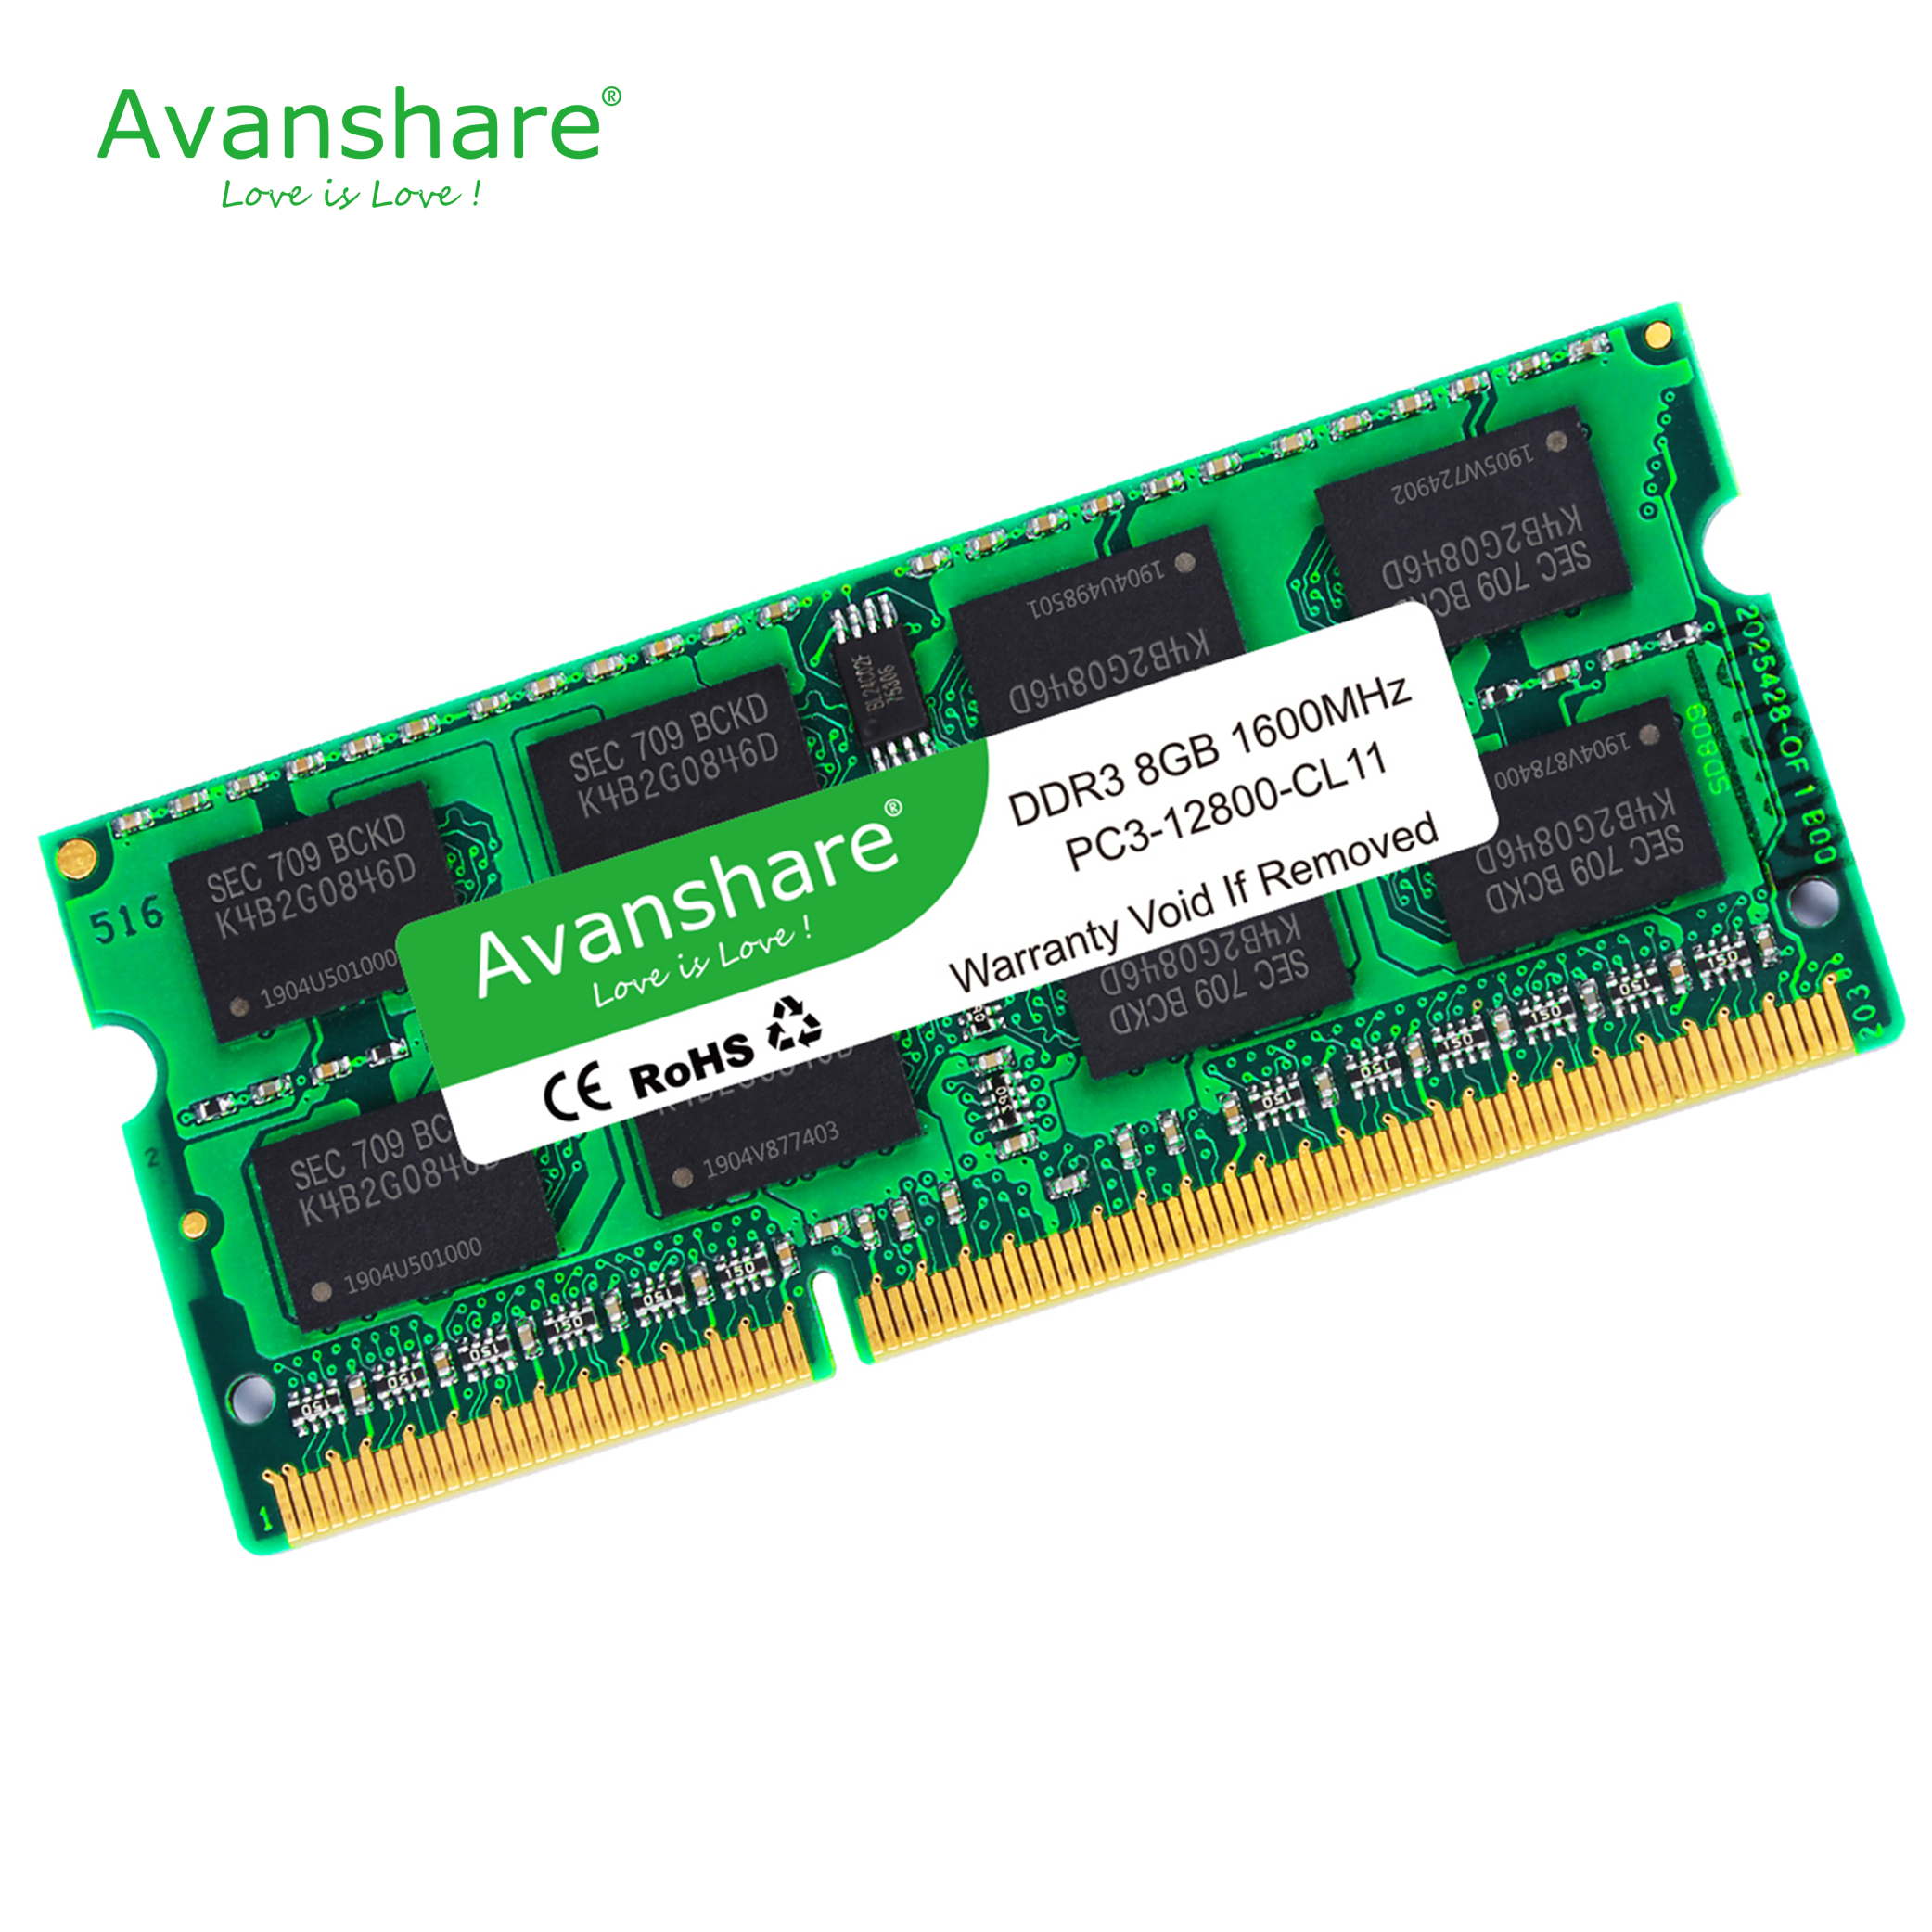 Avanshare Sodimm Ram Memory 1.5v LAPTOP DDR3 2GB 4GB 8GB DDR3 PC3 10600 1333Mhz DDR3 PC3 12800 1600MHz 204pin for super gaming image